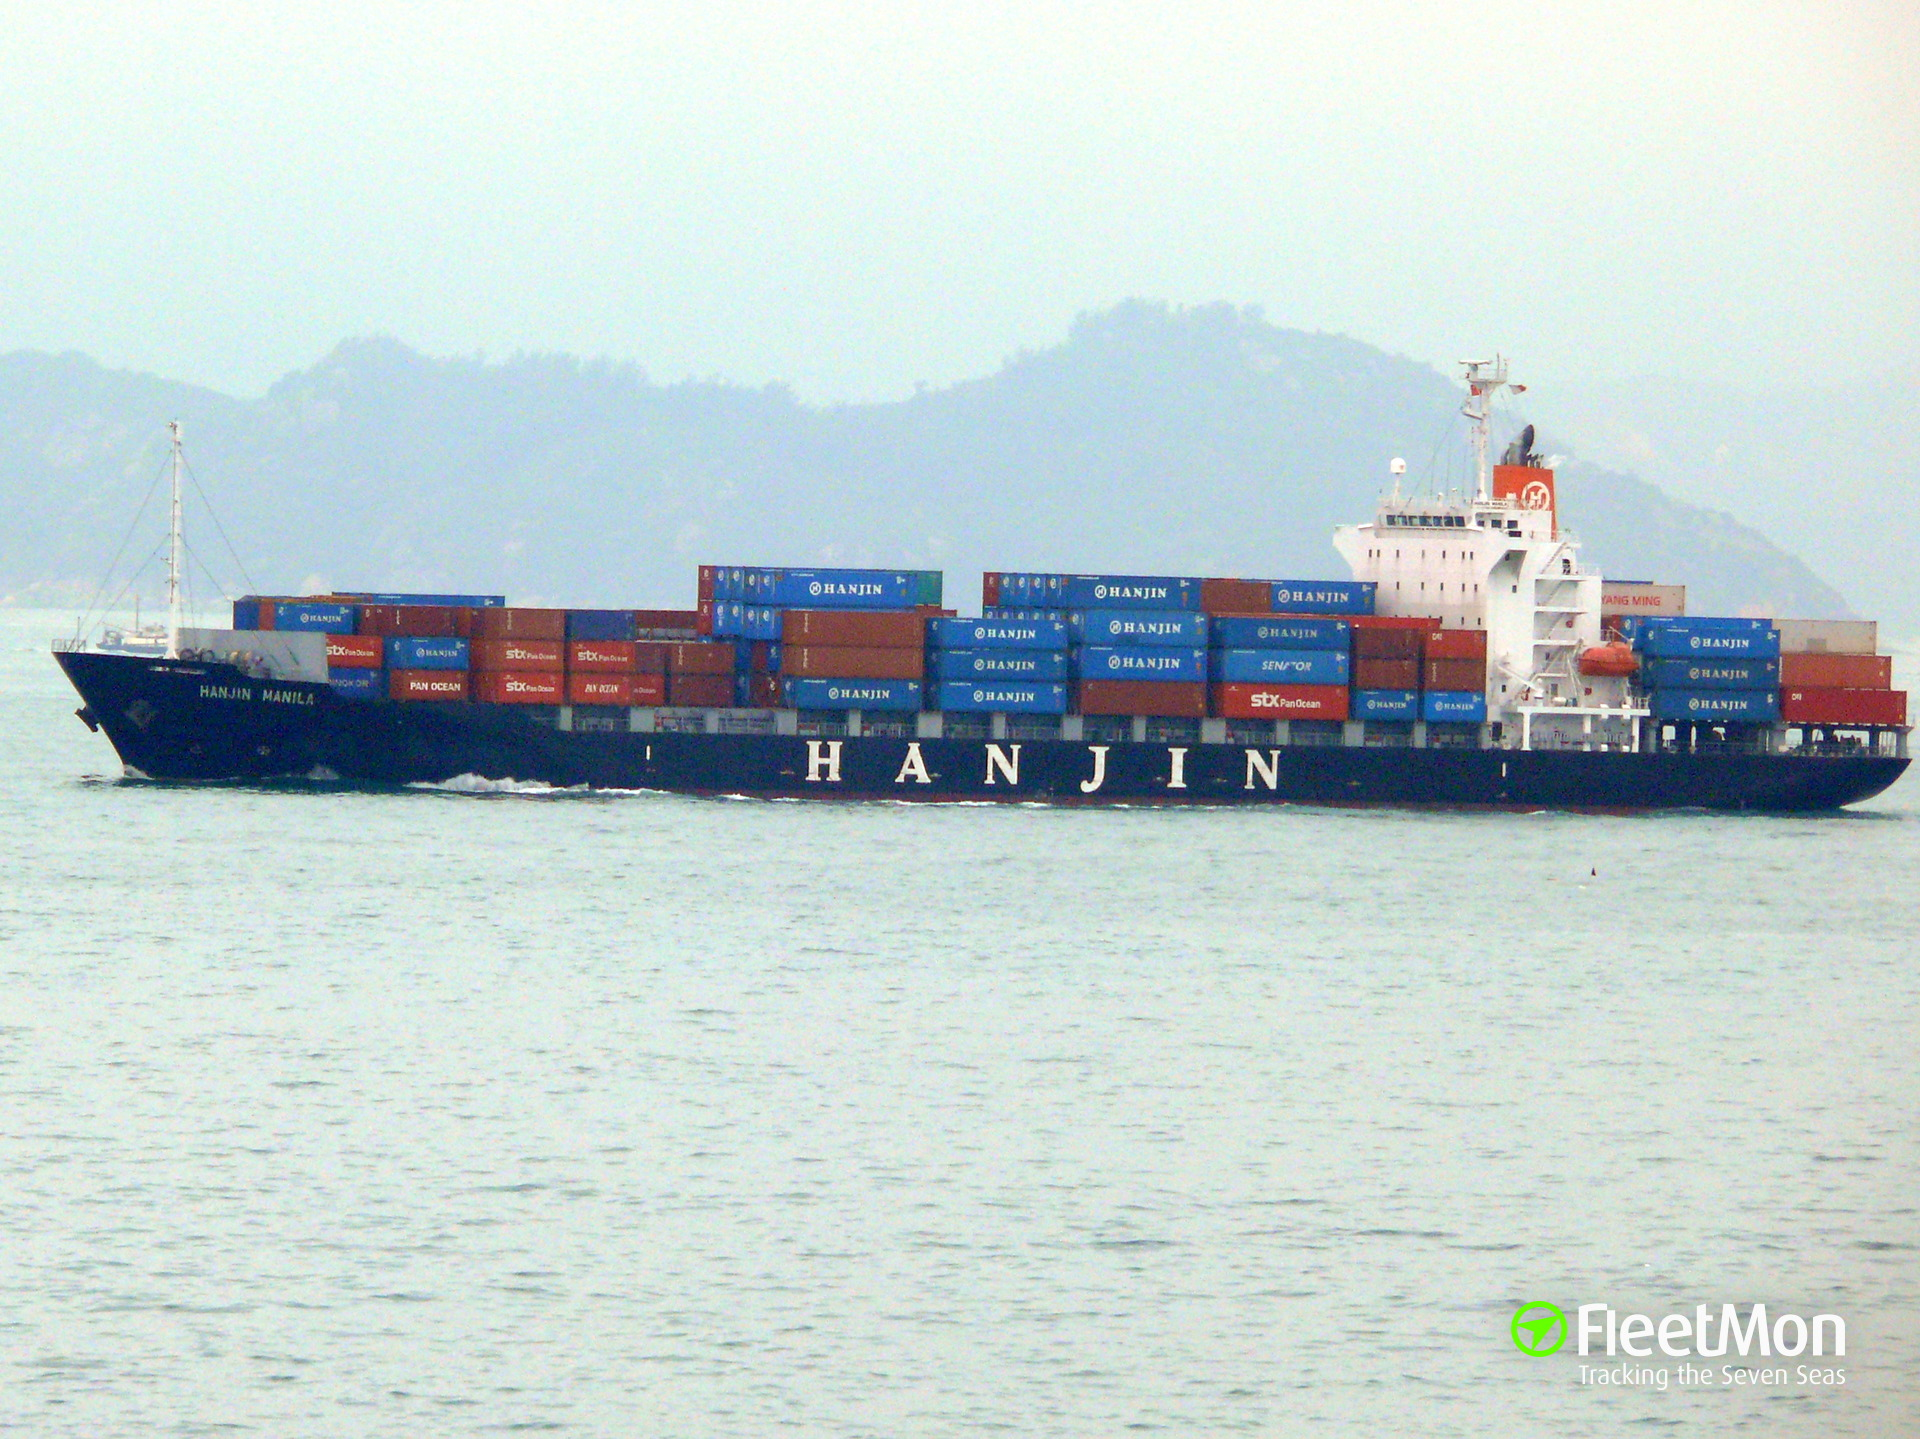 Container ship VAN MANILA arrested after deadly collision which claimed 12 lives, Shanghai